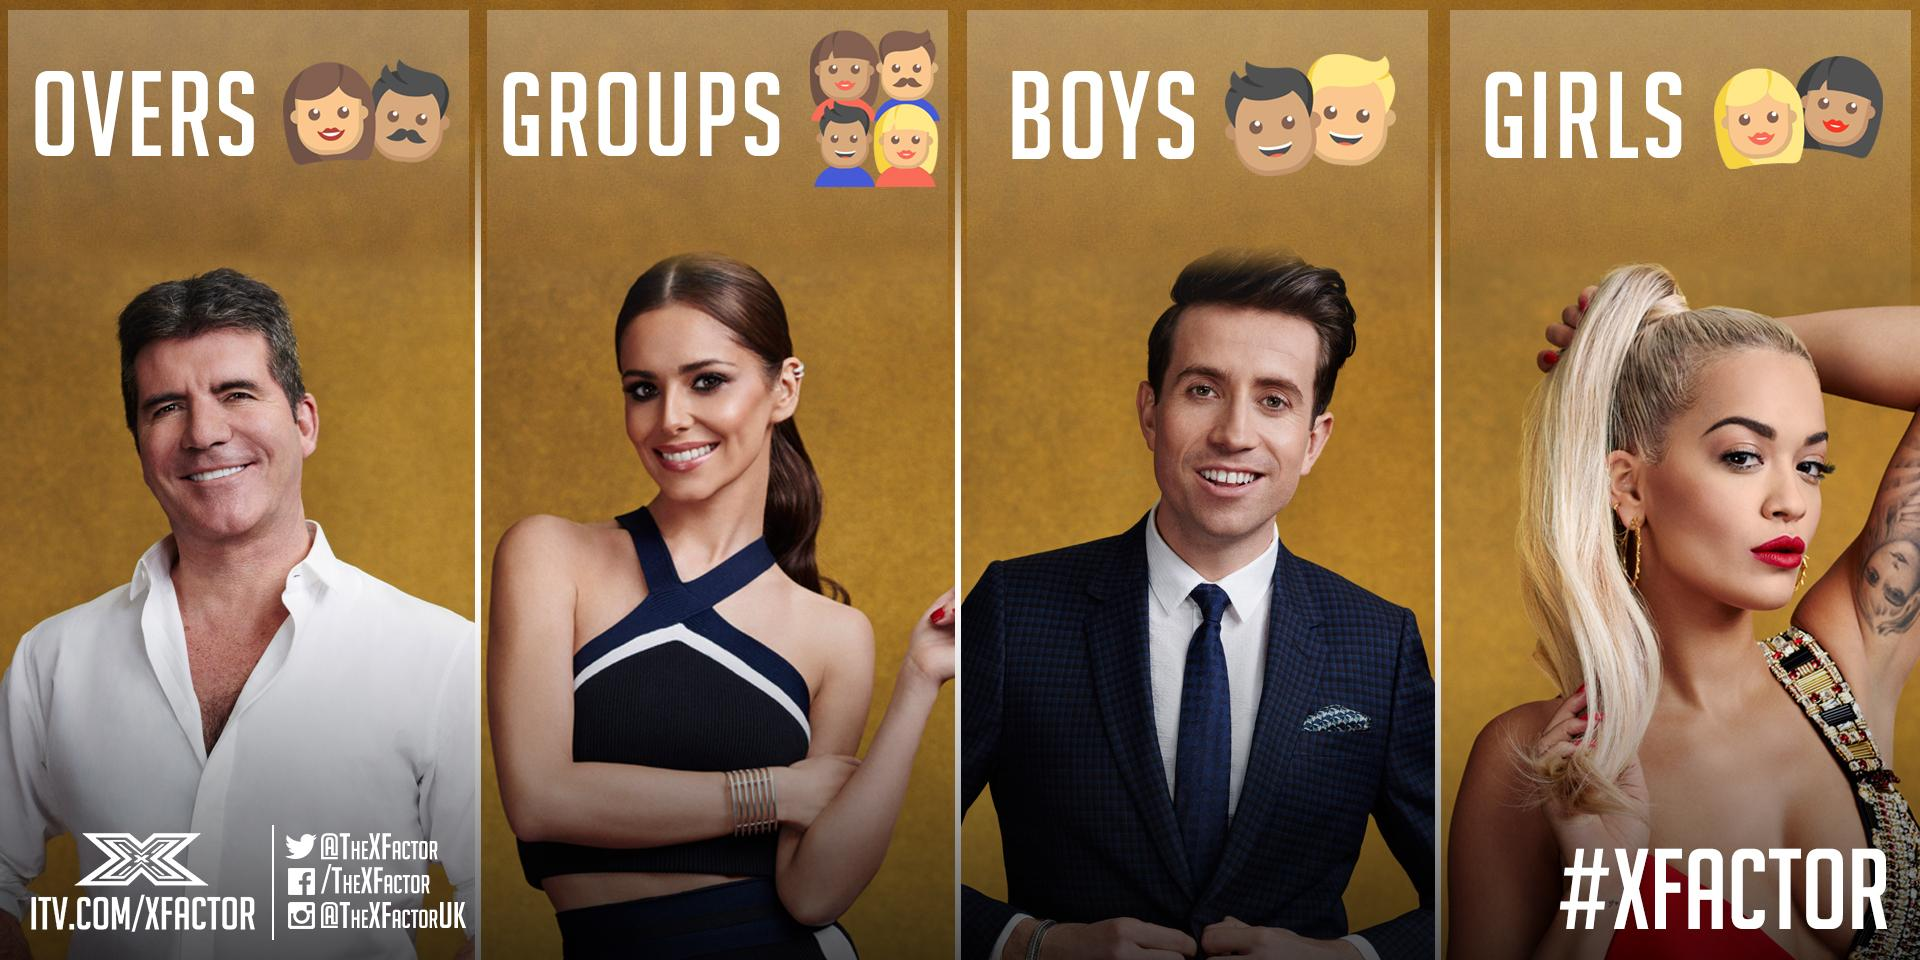 The #XFactor 2015 Judges' categories: @SimonCowell Overs @CherylOfficial Groups @grimmers Boys @RitaOra Girls http://t.co/r6TCOHlTSB